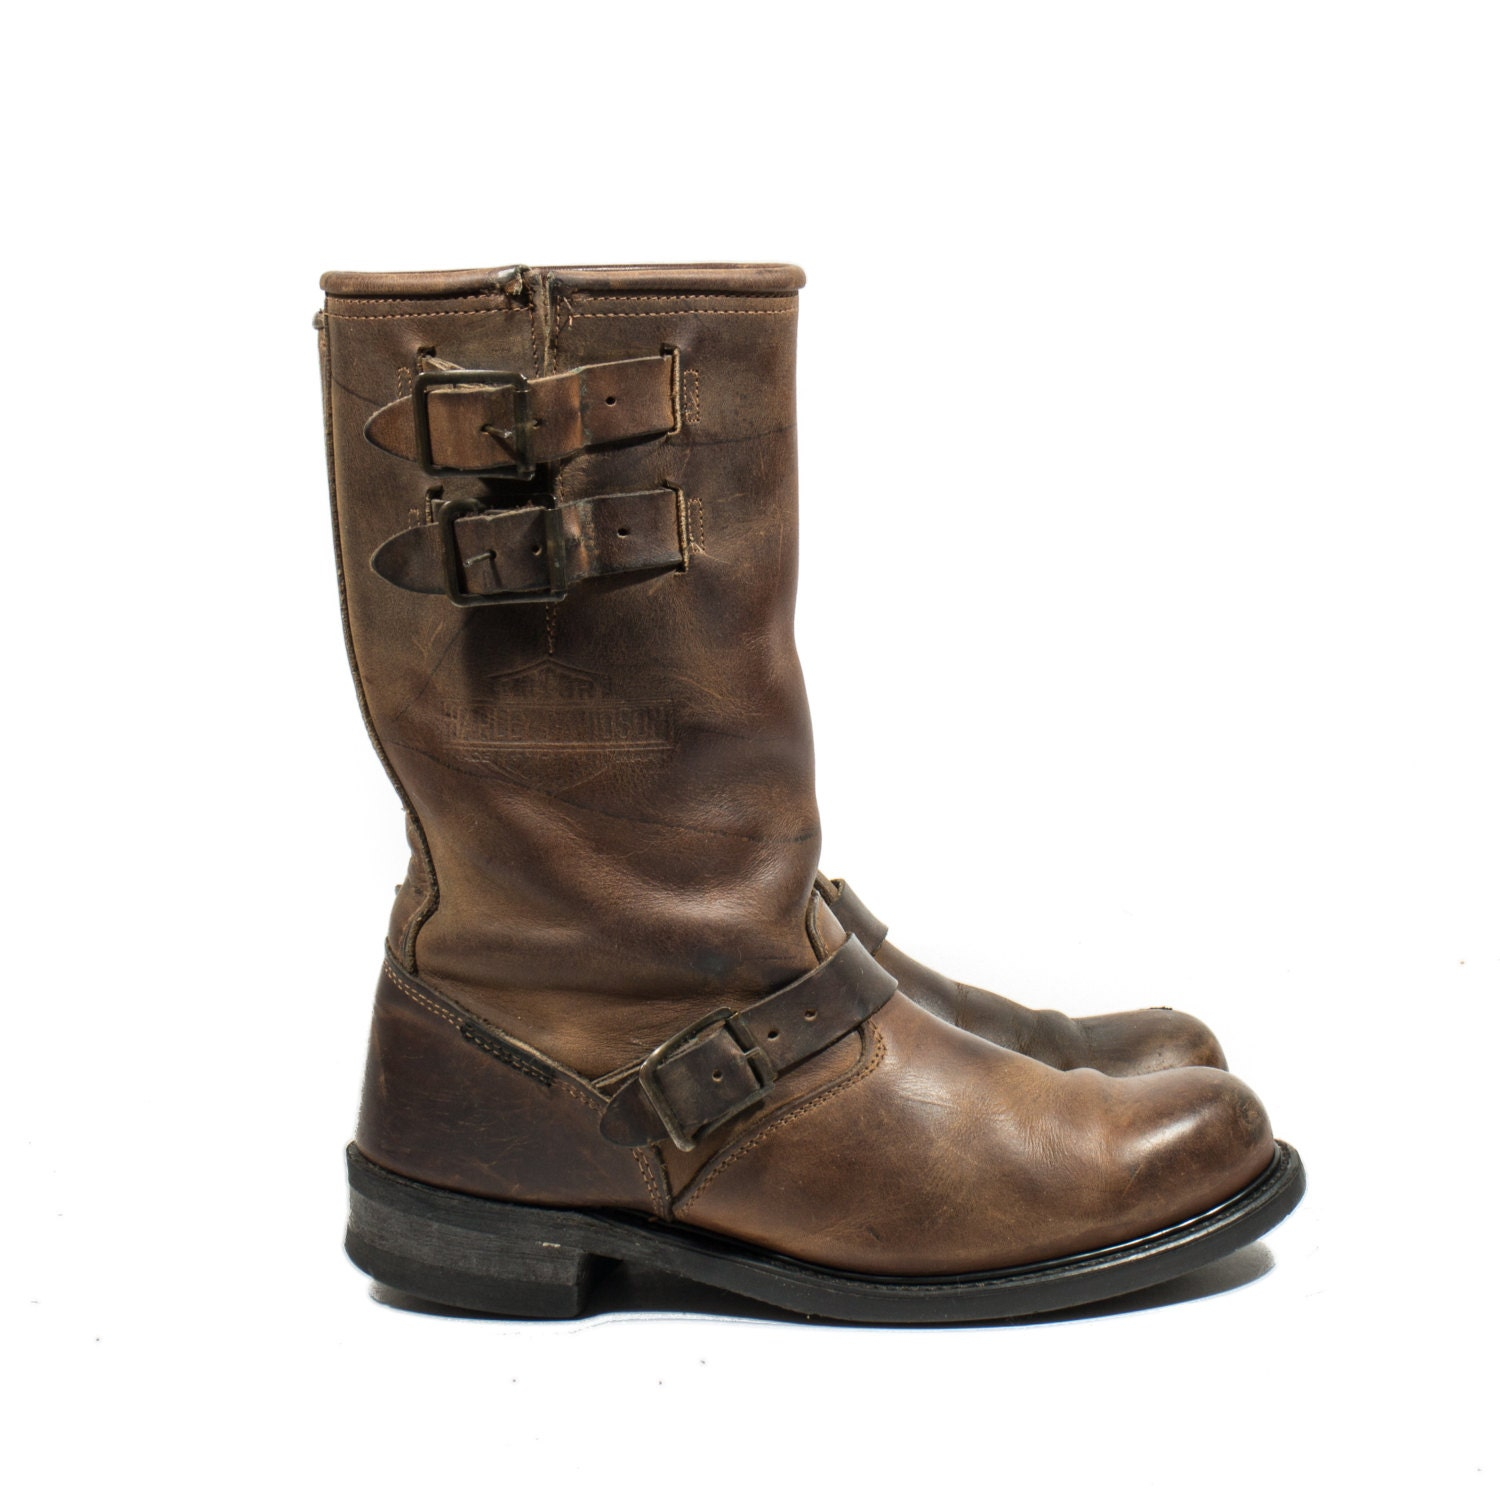 Mens Brown Leather Motorcycle Boots